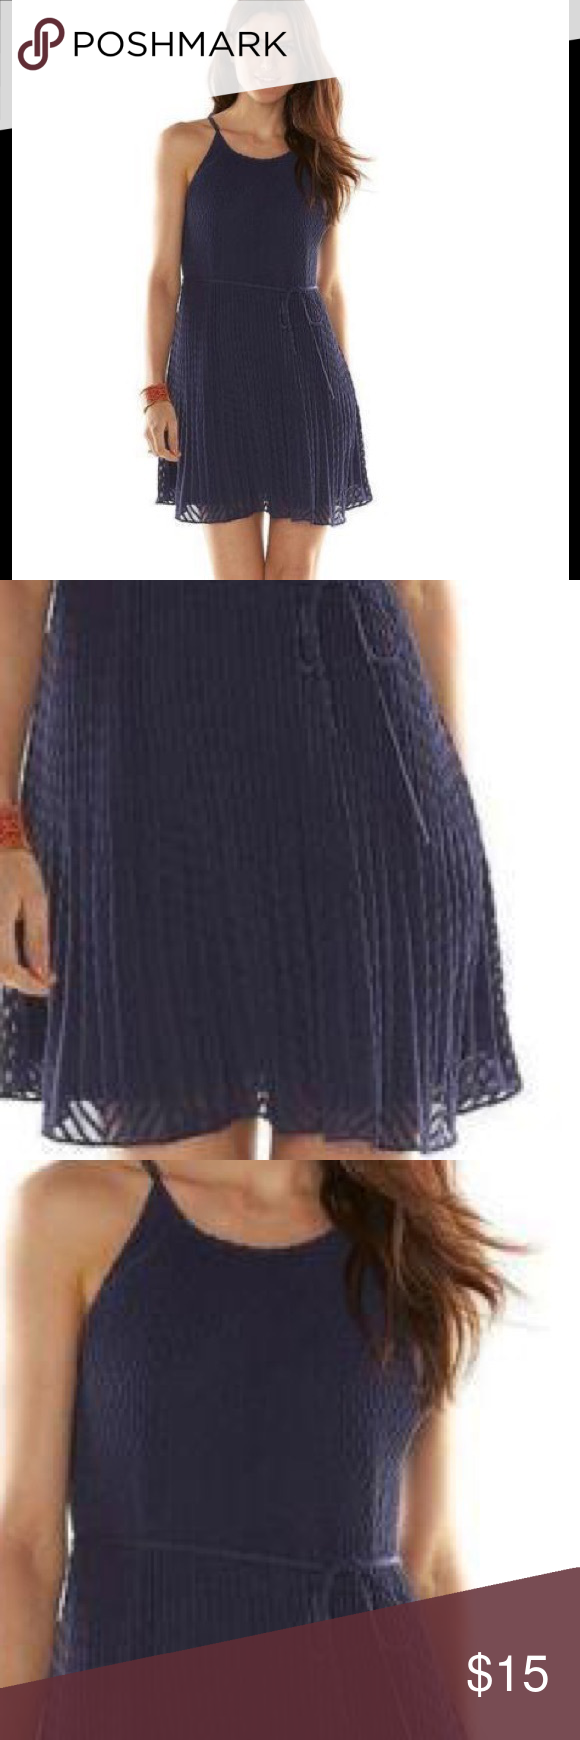 Trapeze Dress ELLE Blue Textured Pleats Size M NWT Brand new with tag, please refer to pictures for details and description ELLE Dresses